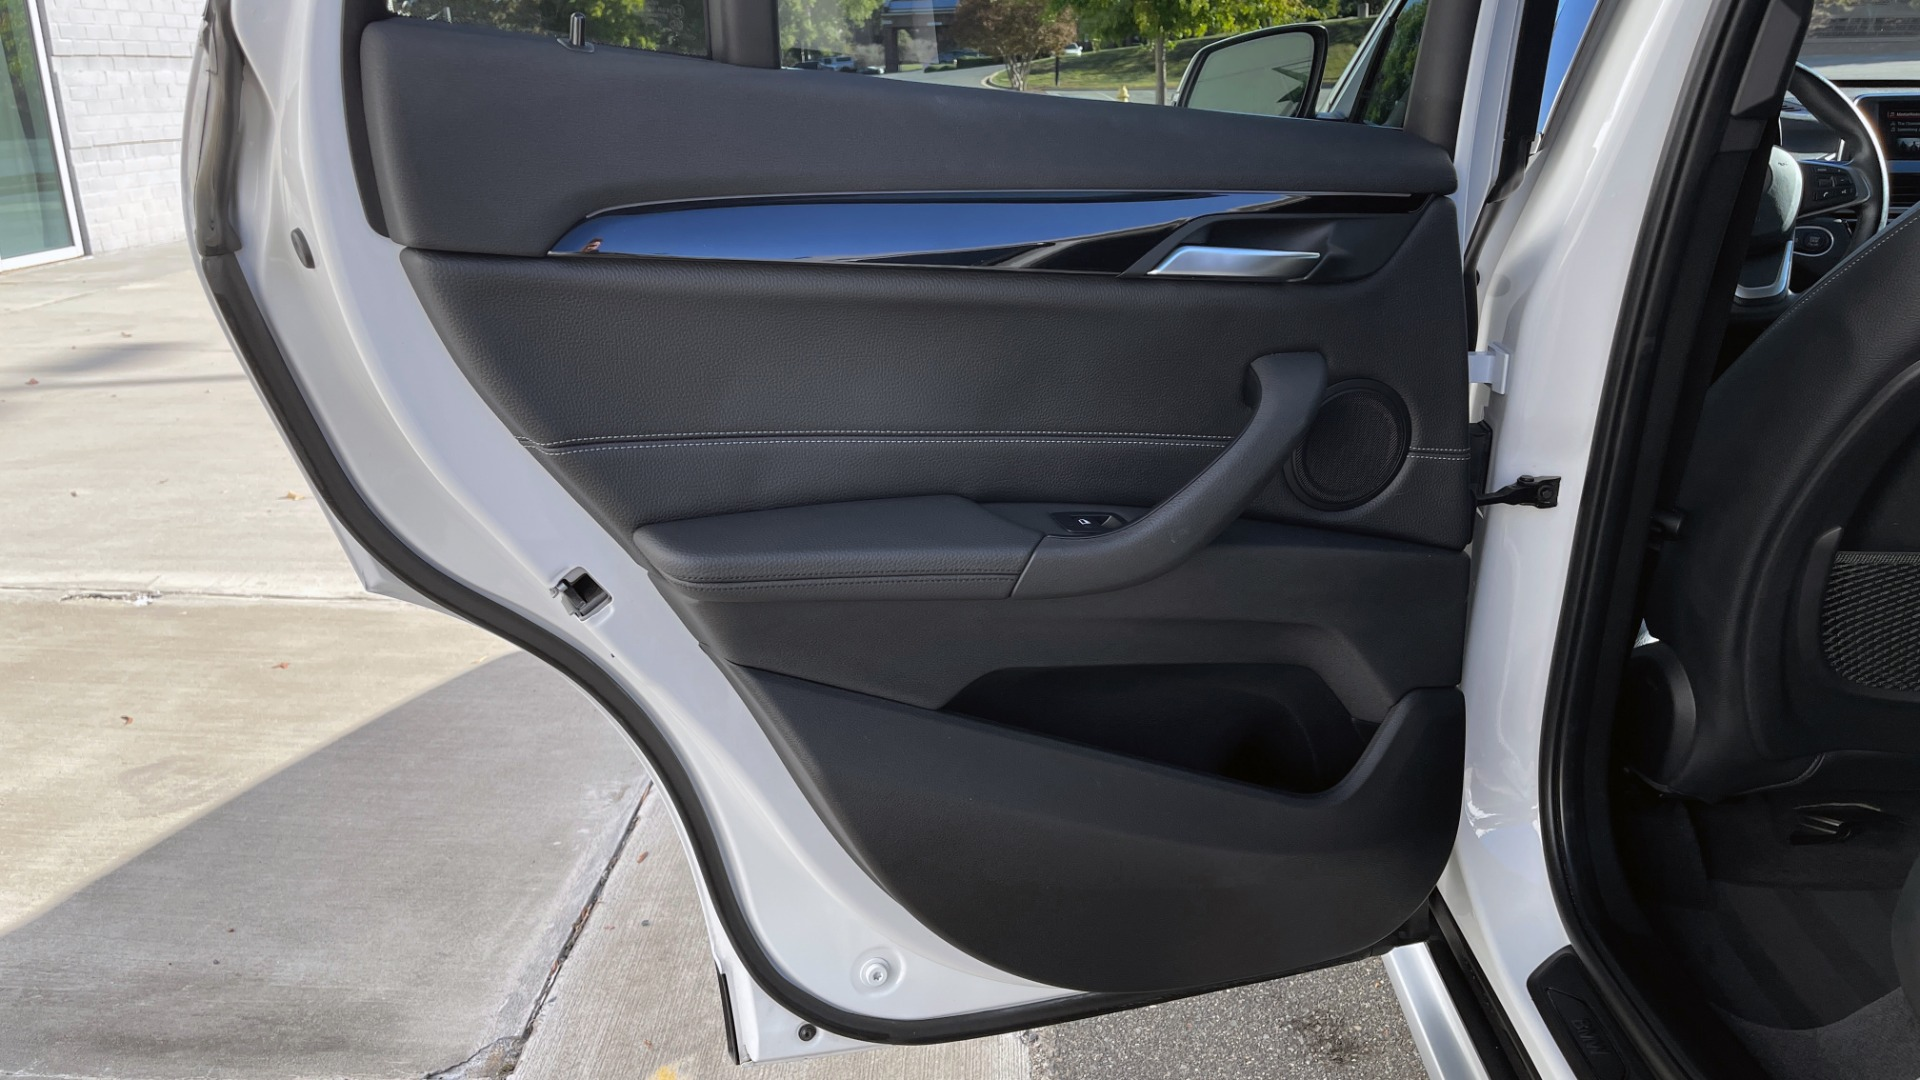 Used 2018 BMW X1 XDRIVE28I / CONV PKG / PANO-ROOF / PARK ASST / REARVIEW for sale $31,995 at Formula Imports in Charlotte NC 28227 42